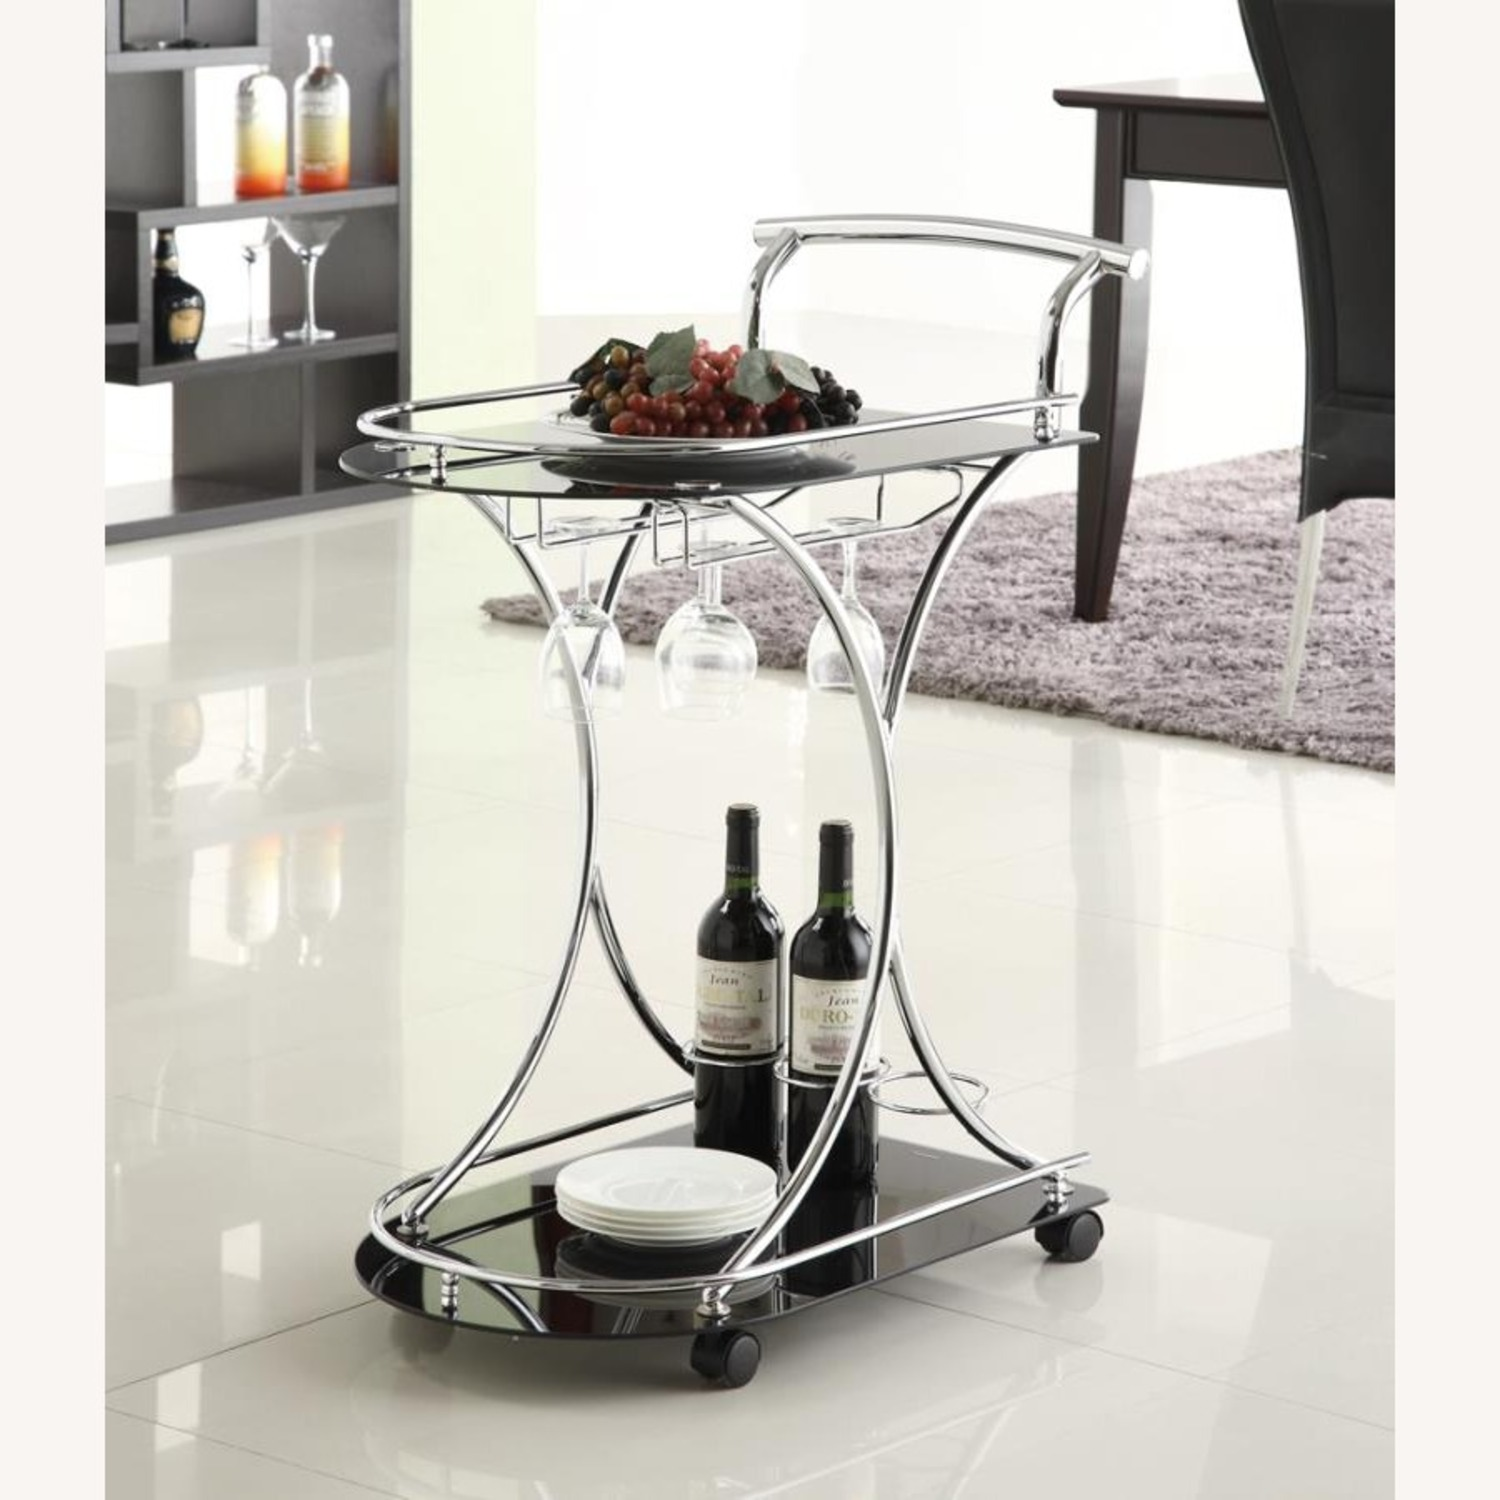 Serving Cart In Chrome Metal Finish W/ Wine Rack - image-3